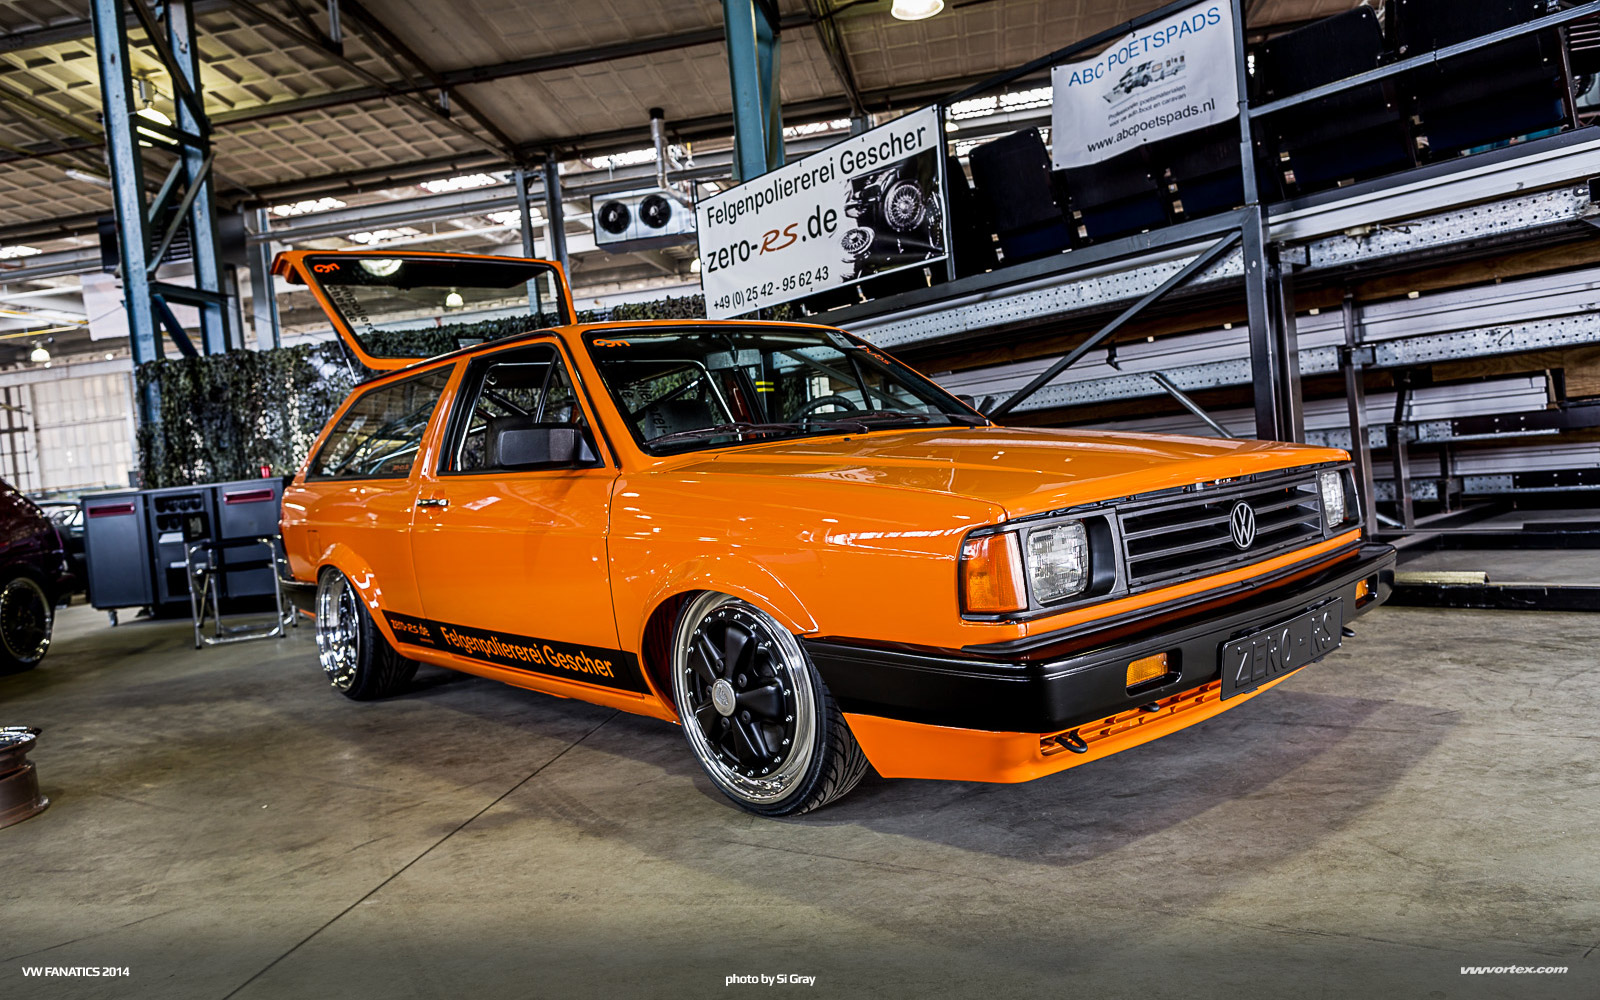 VWFanatics-2014-Si-Gray-362